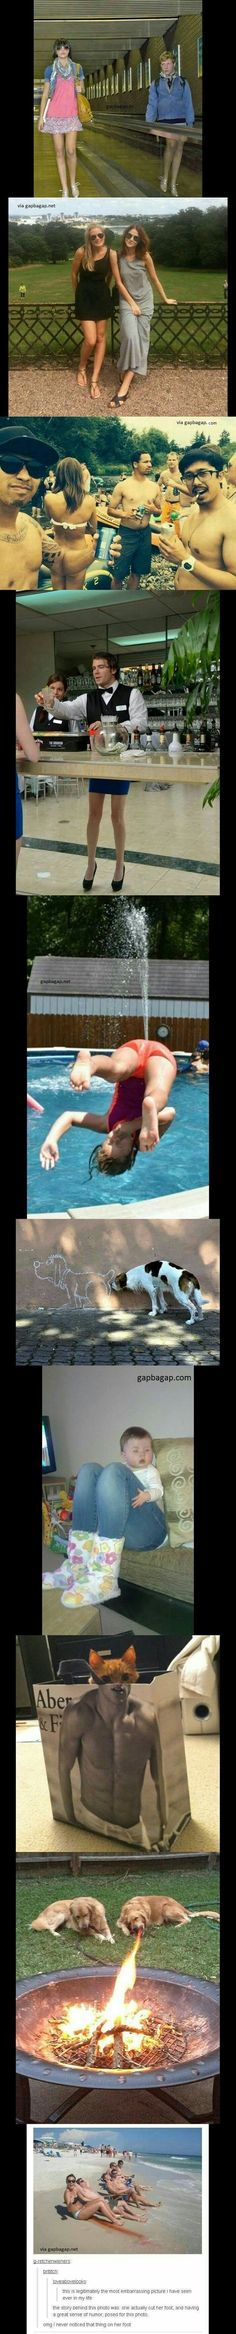 Top 10 Perfectly Timed Photos And The Last One is Hilarious – Gap Ba Gap Funny Shit, Funny Cute, The Funny, Funny Jokes, Hilarious, Funny Stuff, Funny Cartoons, Funny Pranks, Funny Things